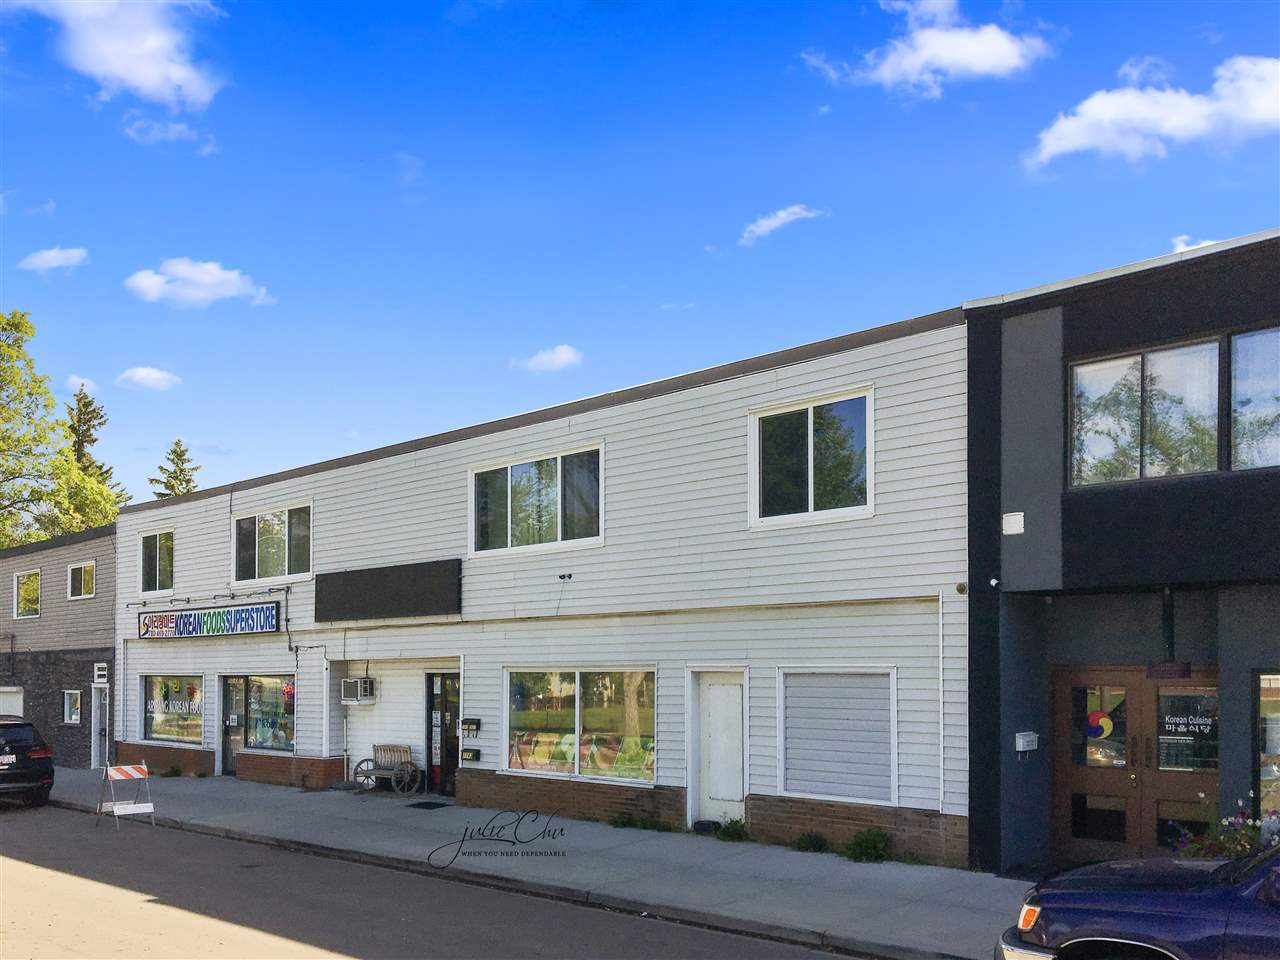 ? Opportunity to purchase a � 5,150 square foot commercial property situated on � 0.17 acres of commercially zoned land. ? The building features � 2,950 square feet of main floor space with a second floor of � 2,200 square feet. ? Surrounded by residential houses in an established neighbourhood. Ideally situated close to all amenities and minutes from Whyte Avenue and 75 Street. ? The subject property is the last remaining building on the block of redeveloped commercial properties, creating an excellent upside to the purchase. ? Entry level price point into ownership with rental income potential from residential suites on site.